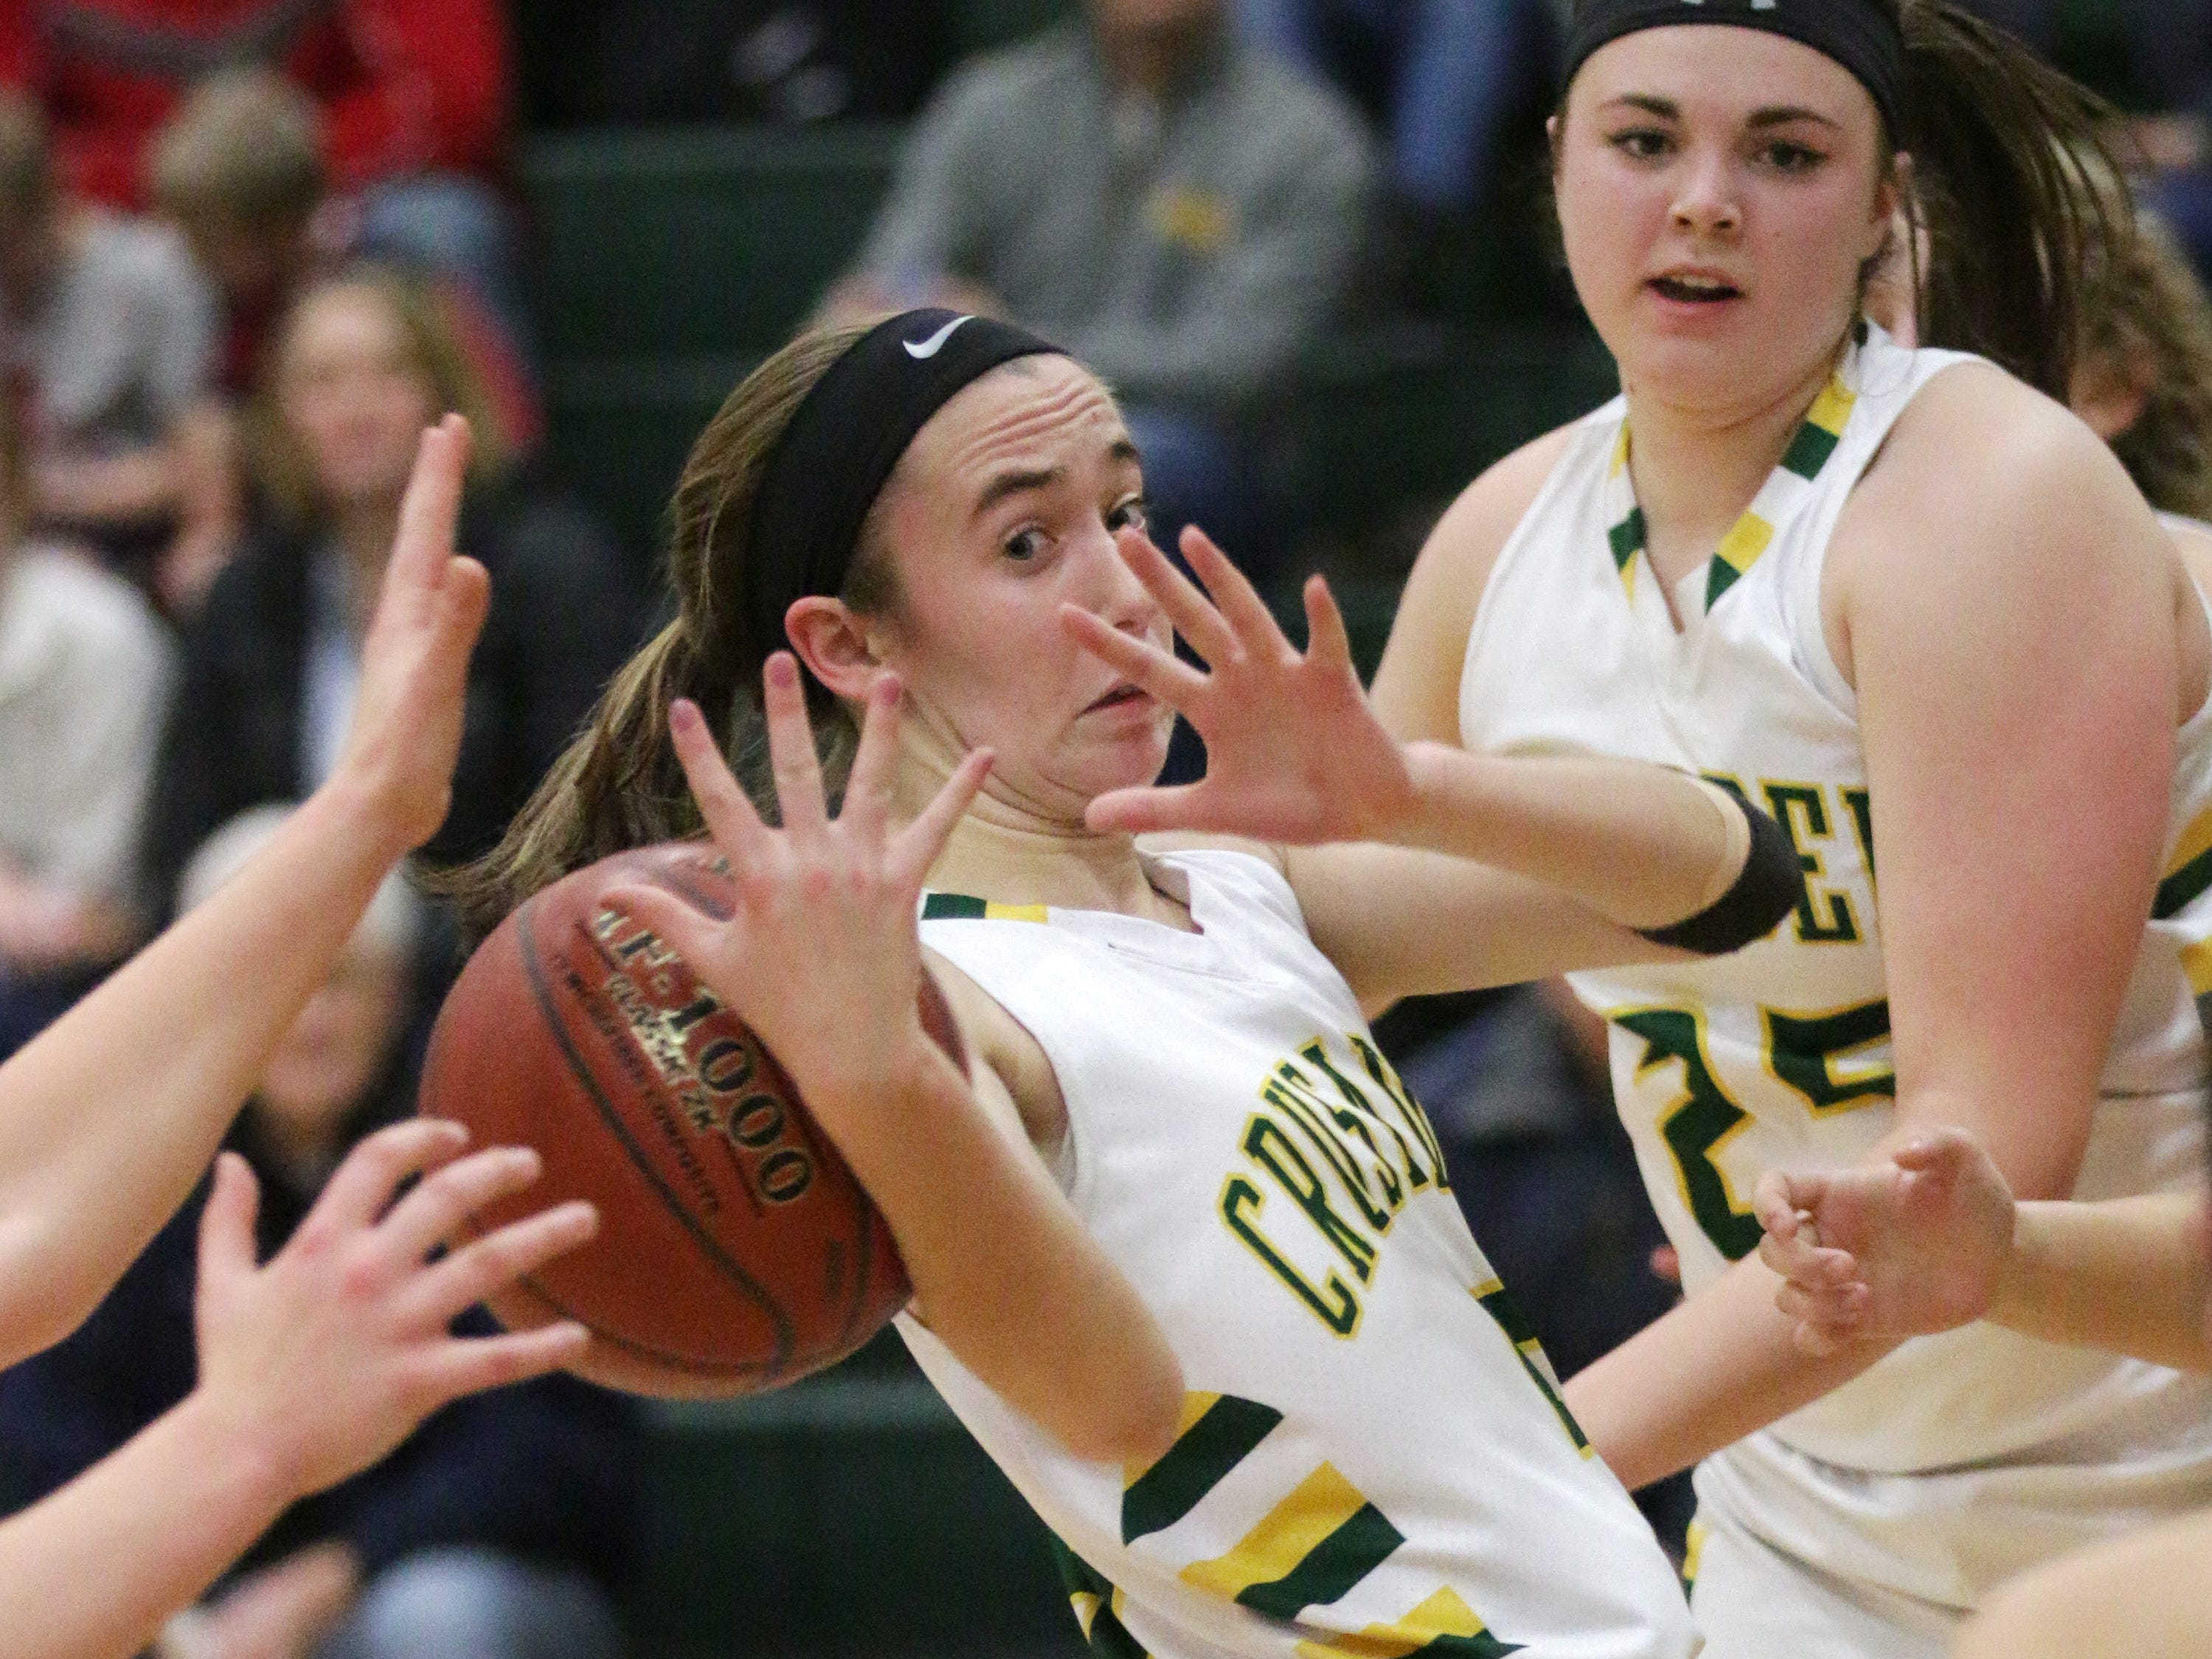 Sheboygan Lutheran's Katelyn Witte (5) looks as the ball slips from her hands against Manitowoc Lutheran, Tuesday, January 30, 2018 in Sheboygan, Wis.